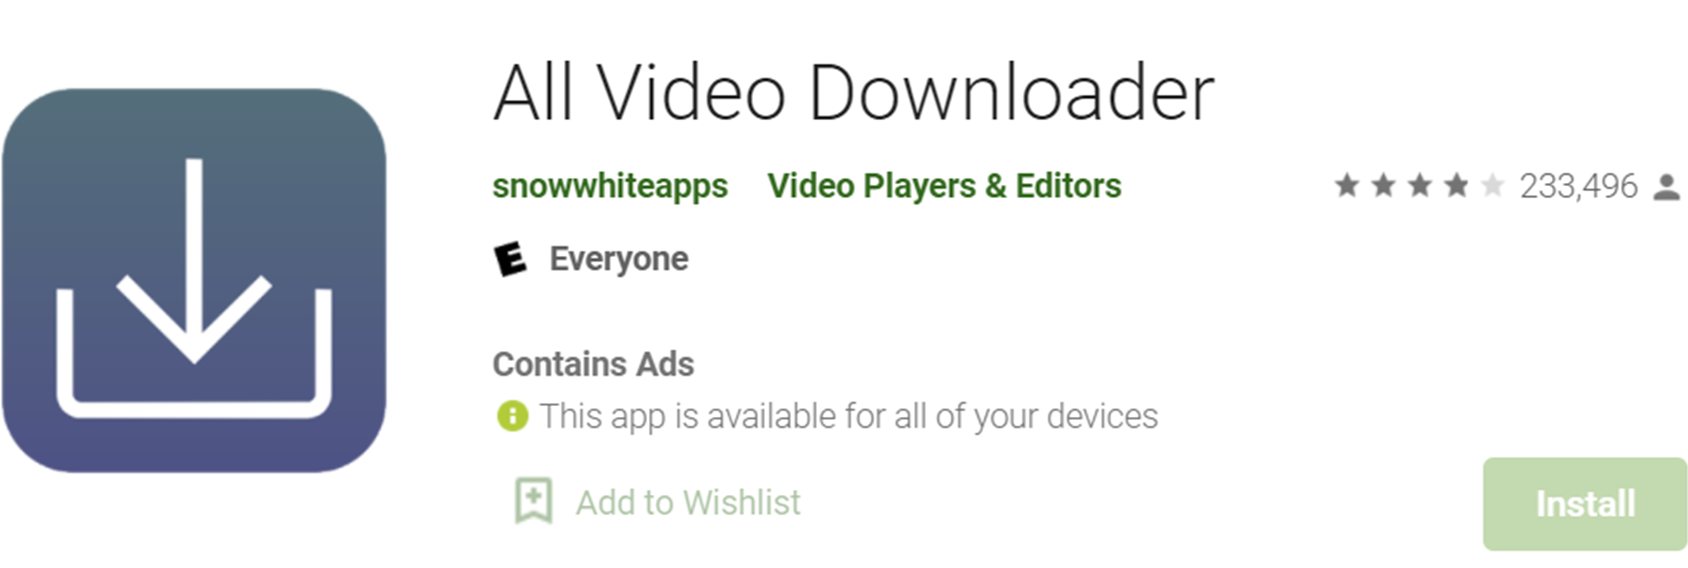 All Video Downloader on app store